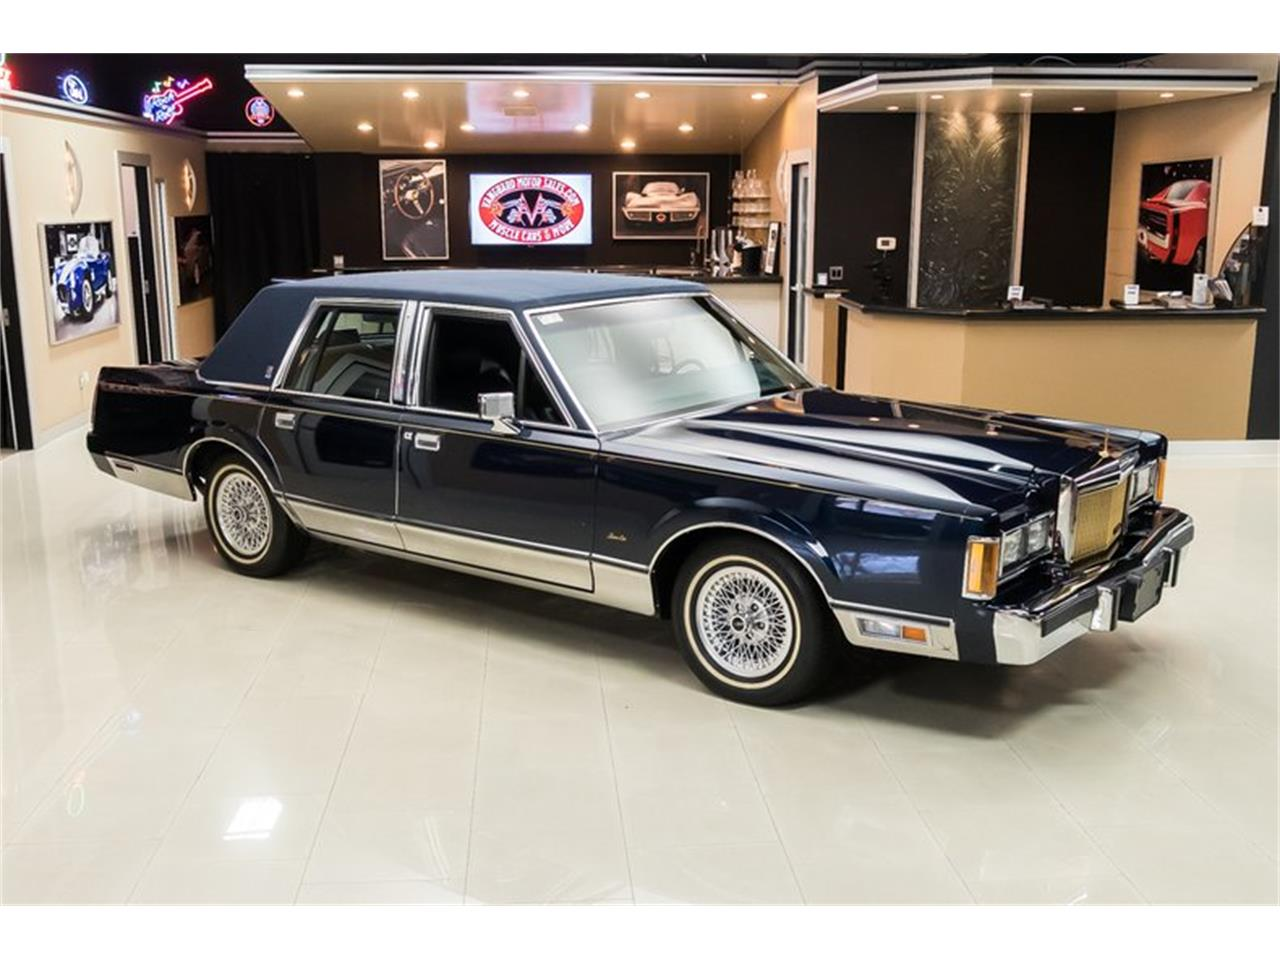 Large Picture of '89 Town Car located in Plymouth Michigan - $28,900.00 Offered by Vanguard Motor Sales - OYYG